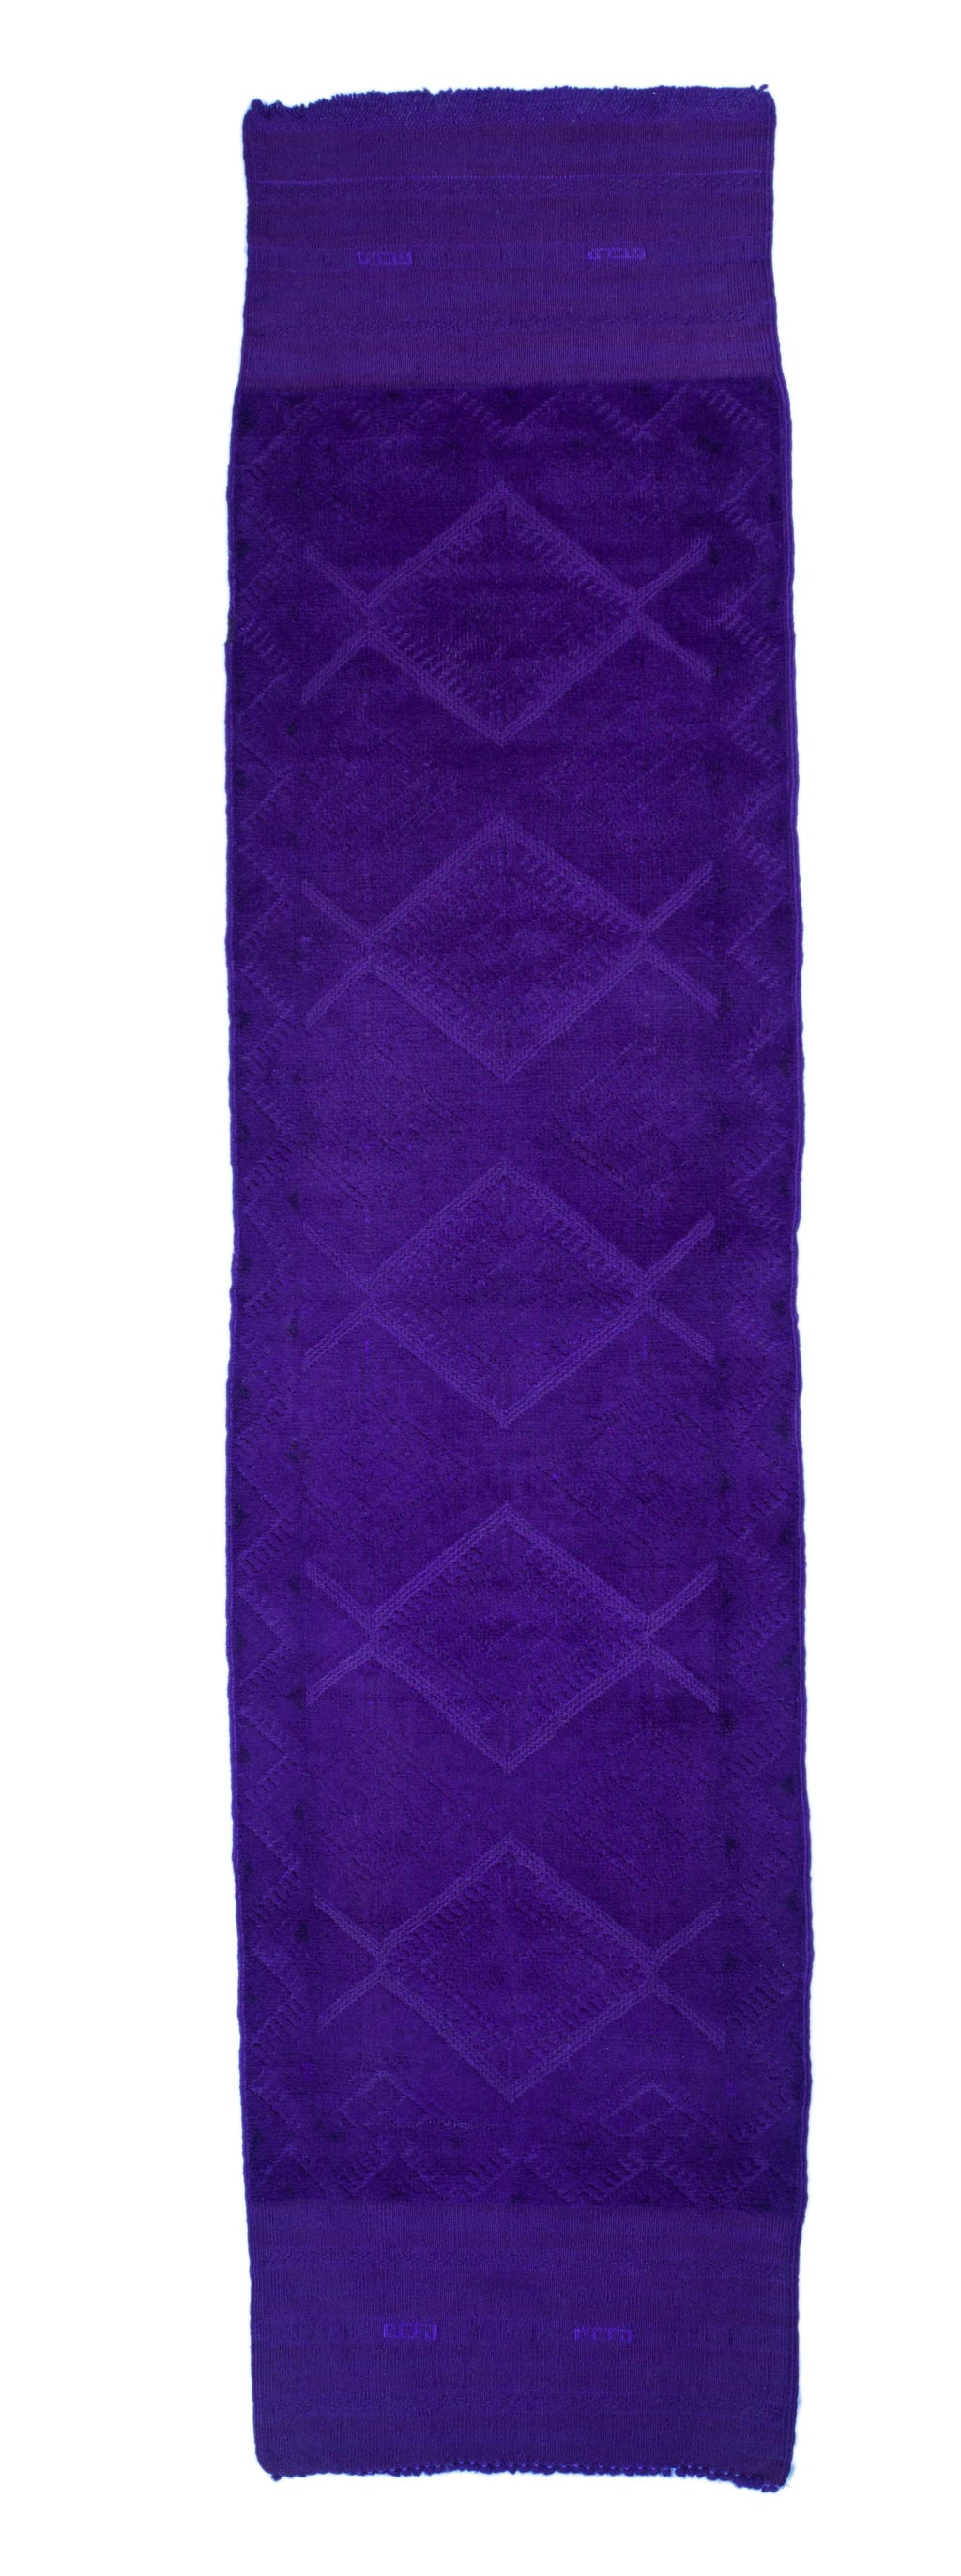 2x9 Overdyed Vintage Tribal Purple Runner 2550 - west of hudson